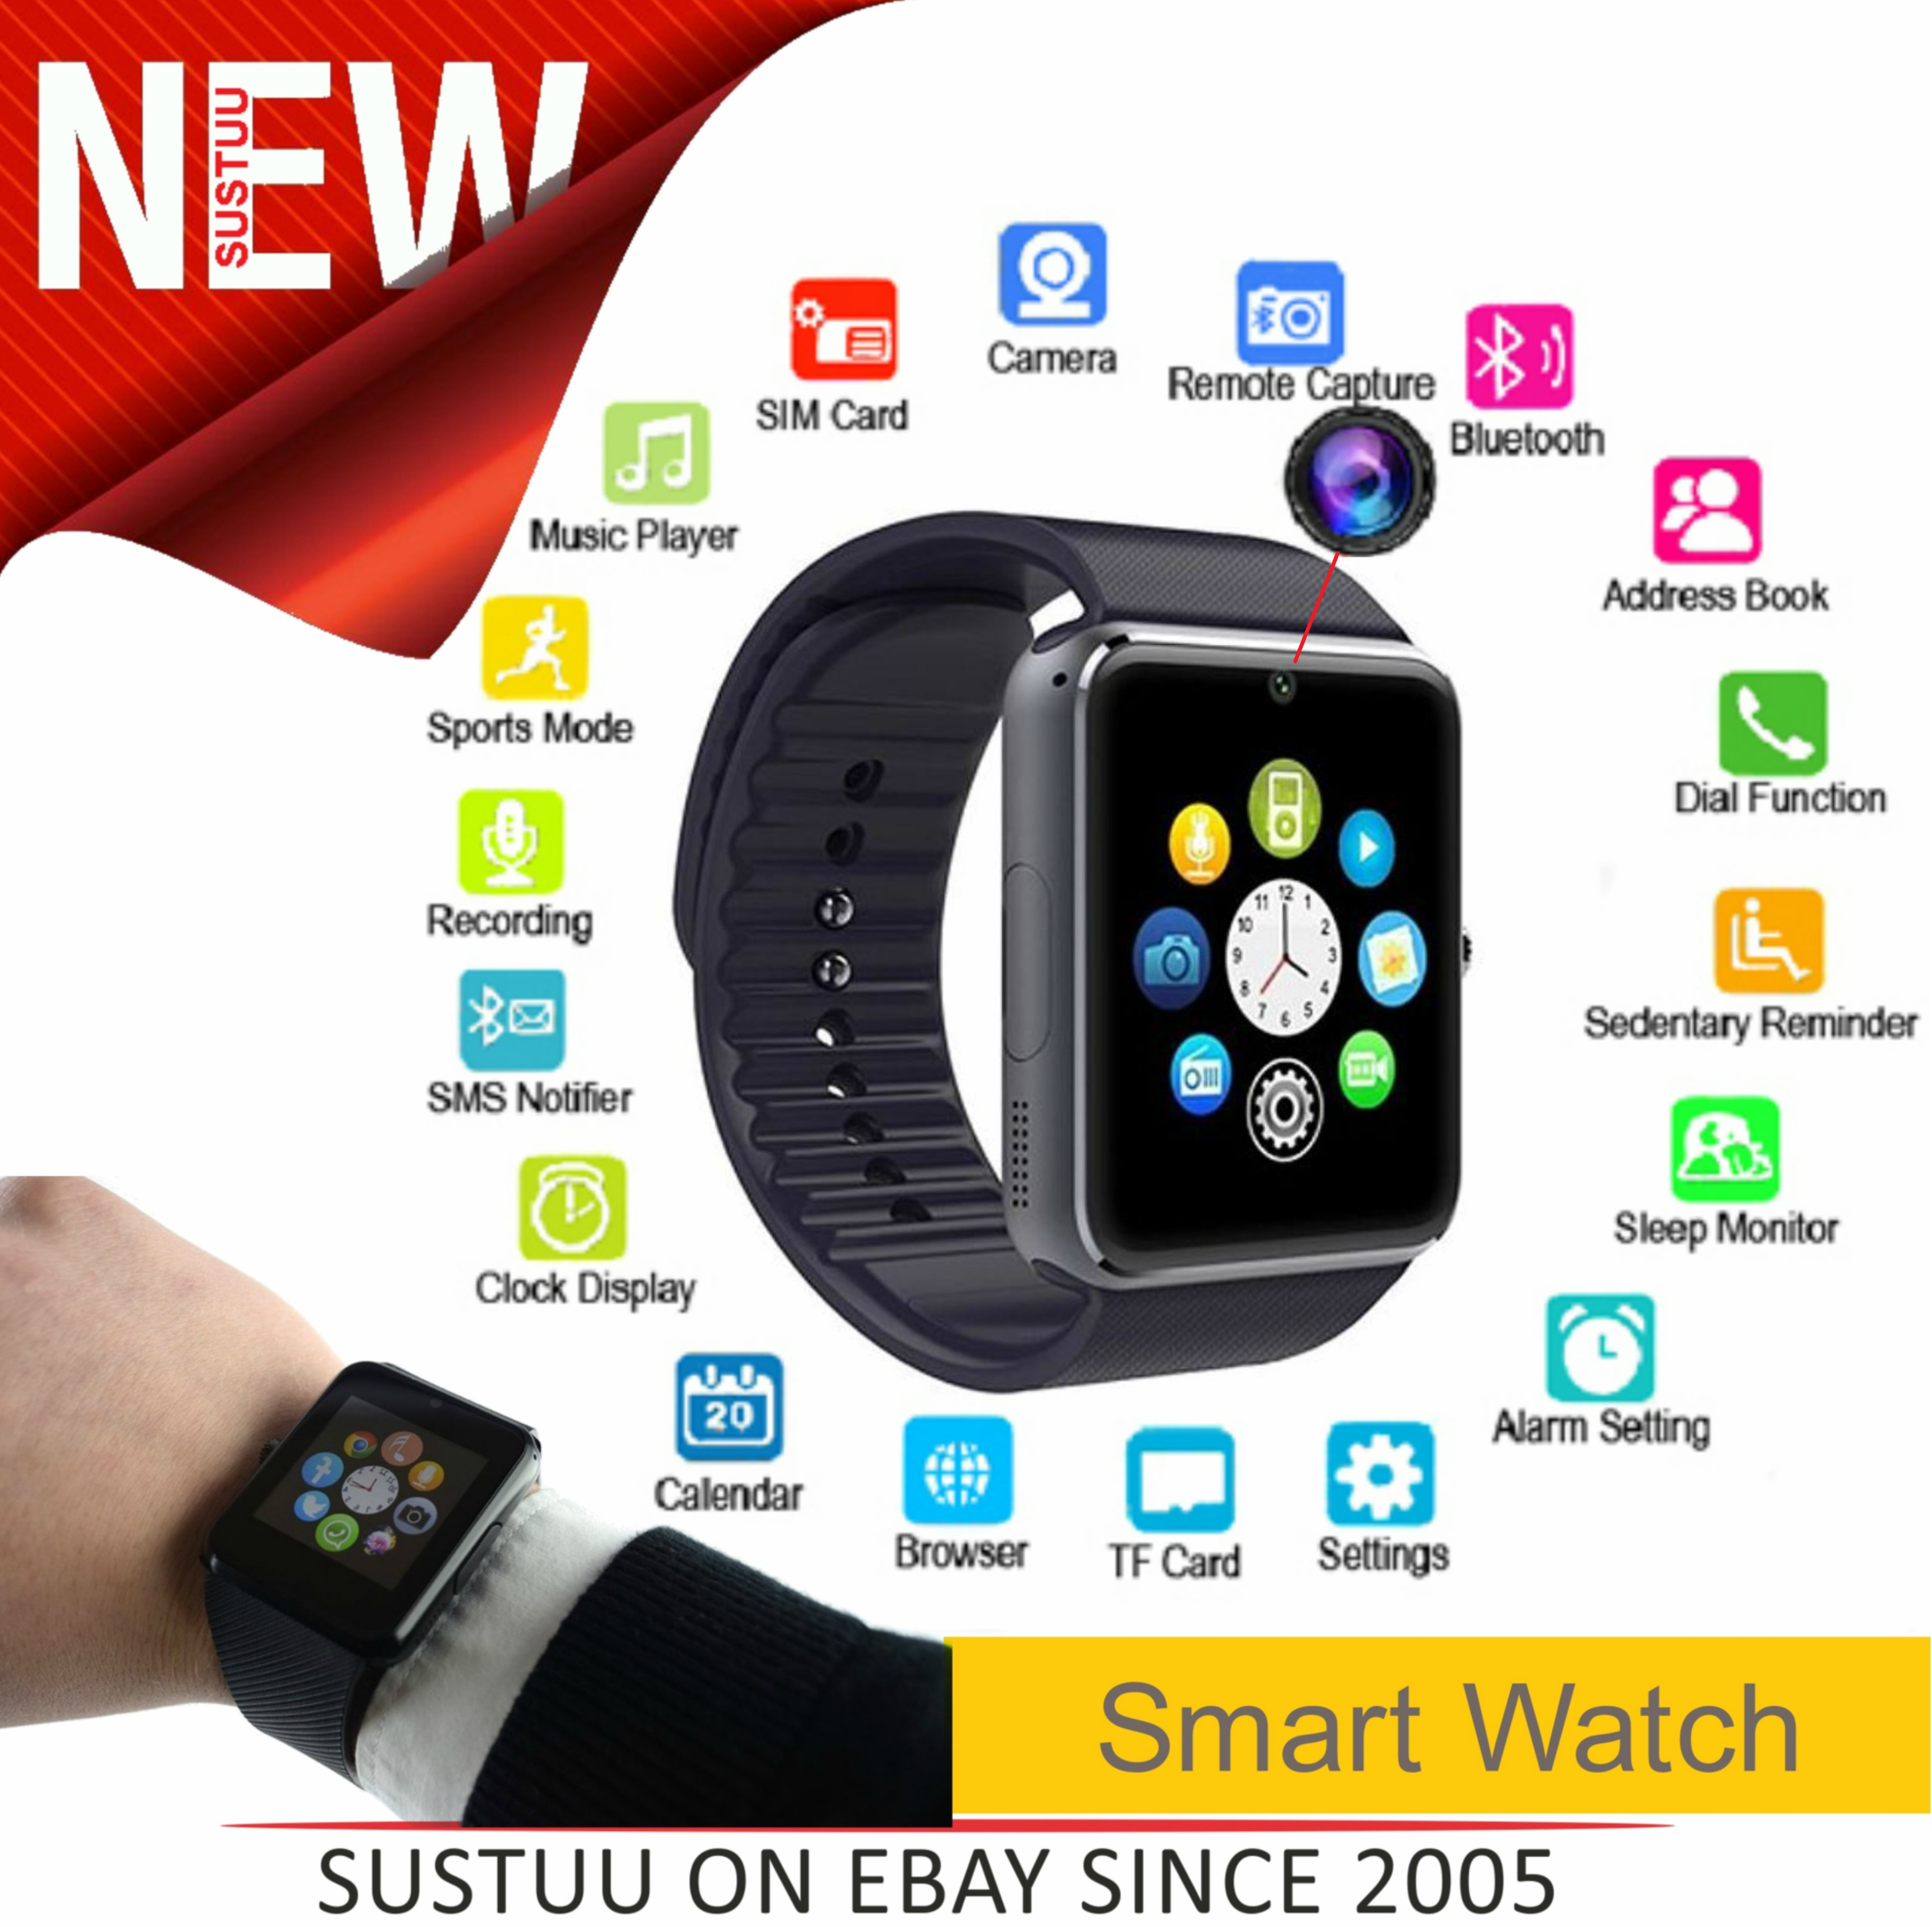 Smart Watch with Camera|Bluetooth|Calling|Touchscreen|Step Tracker|Android & iOS